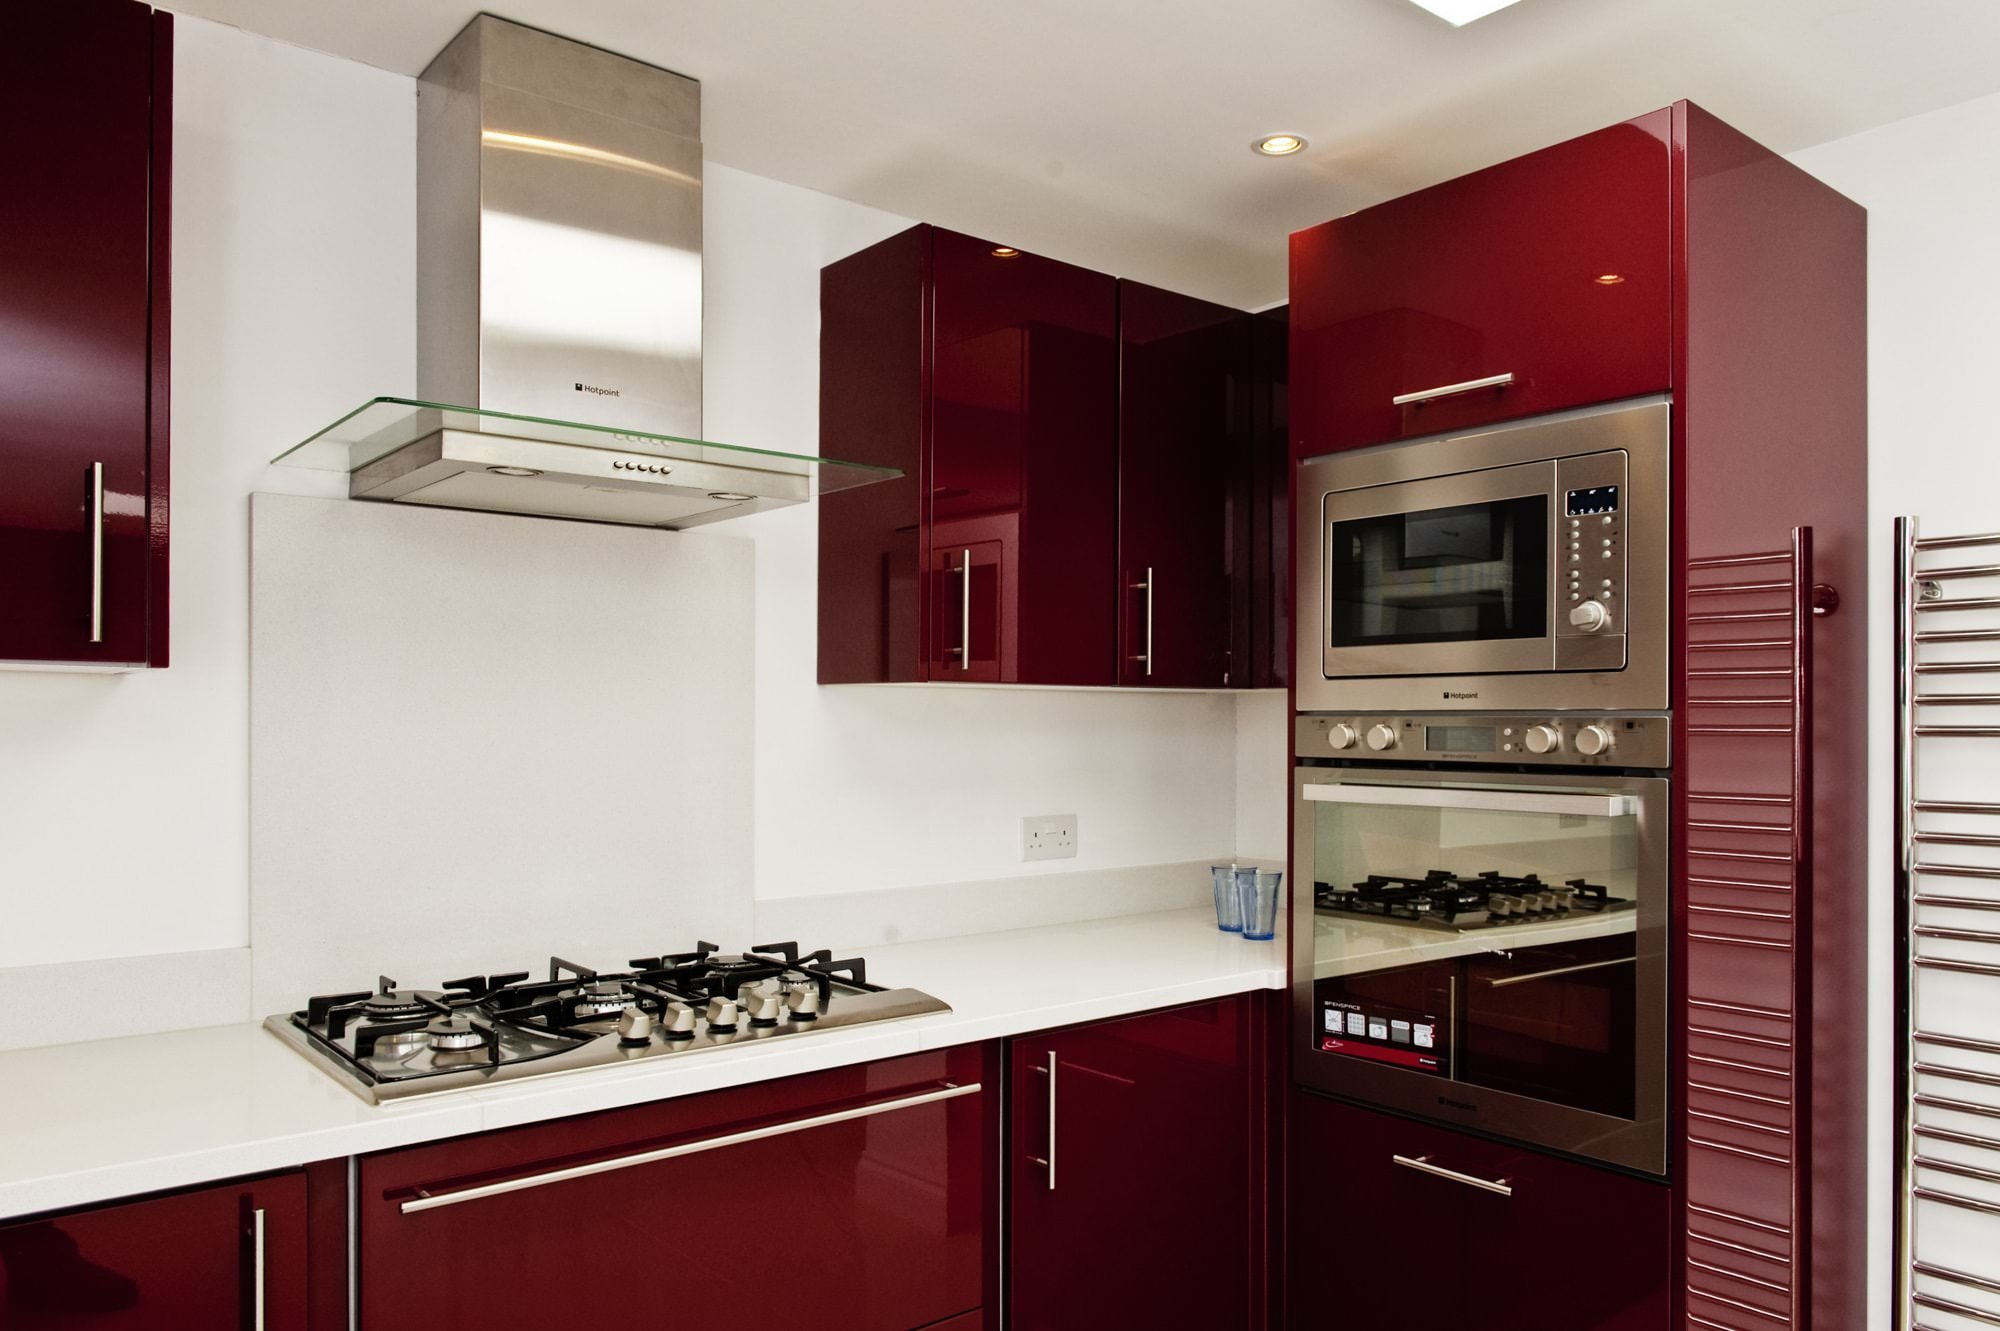 cimstone-arcadia-white-quartz-crawley–west-sussex-113014-hob-and-oven-min